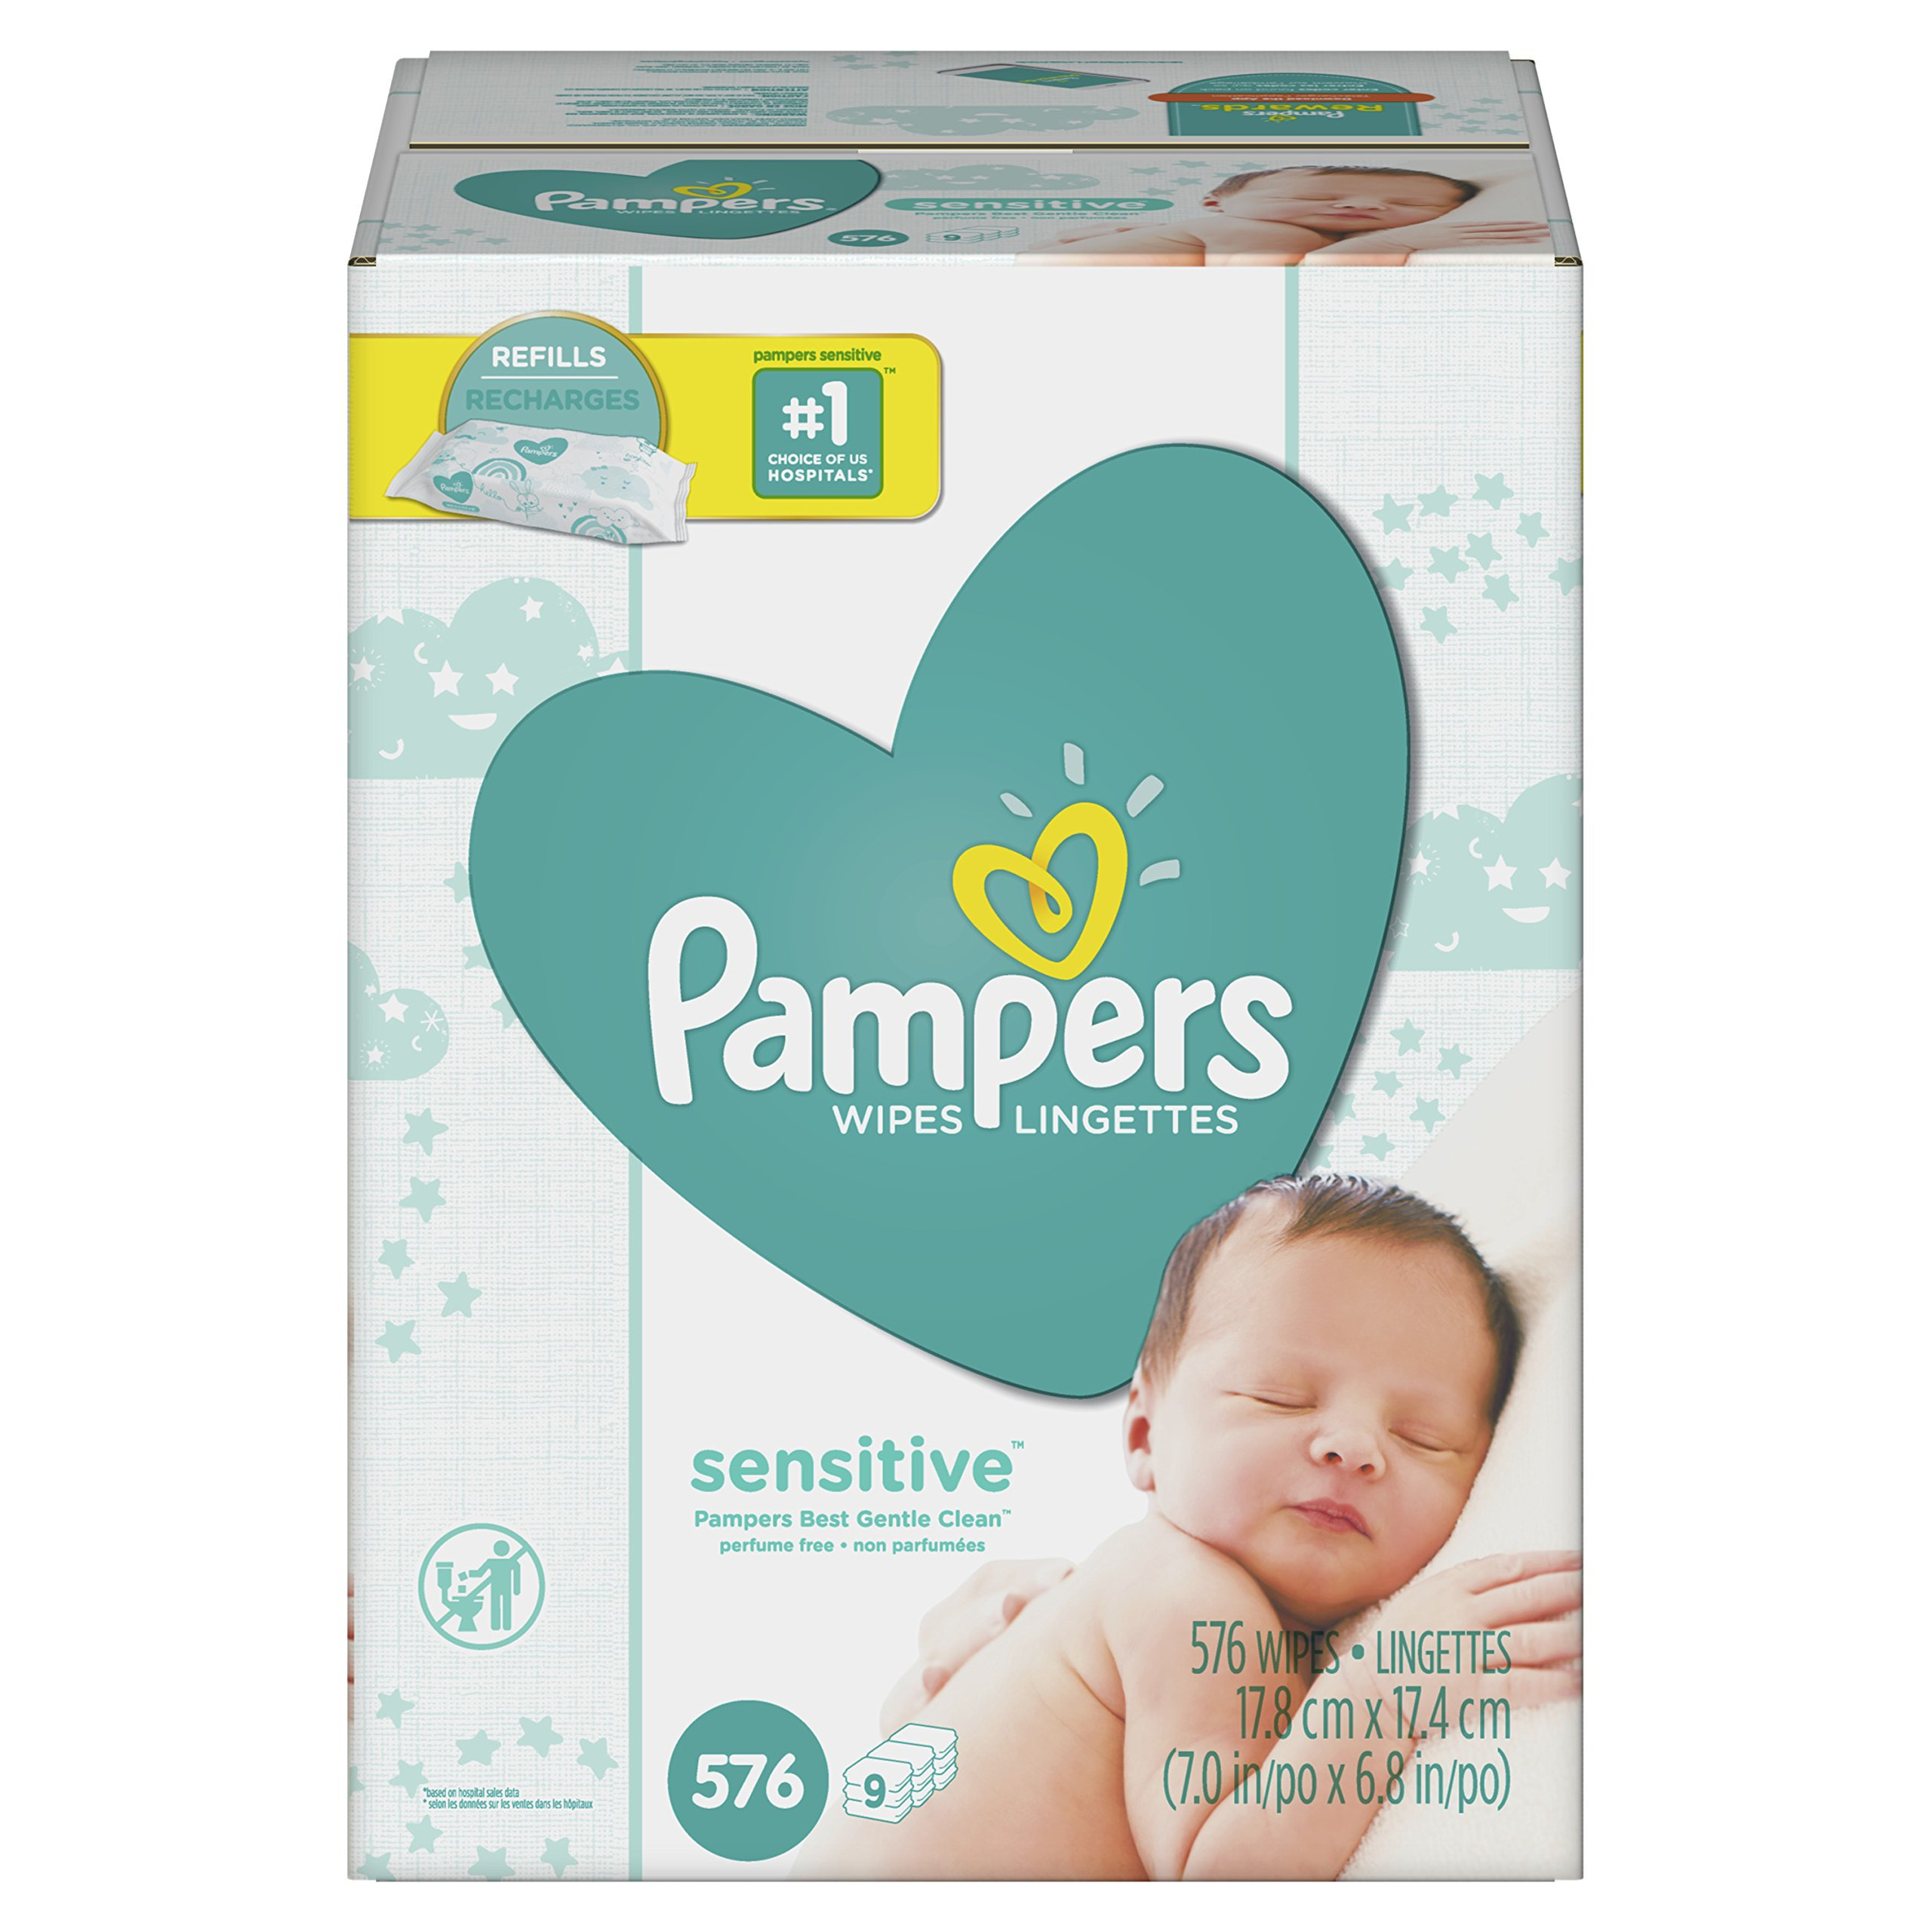 Pampers Sensitive Water-Based Baby Wipes 9X Refill Packs, 576 Count (Pack May